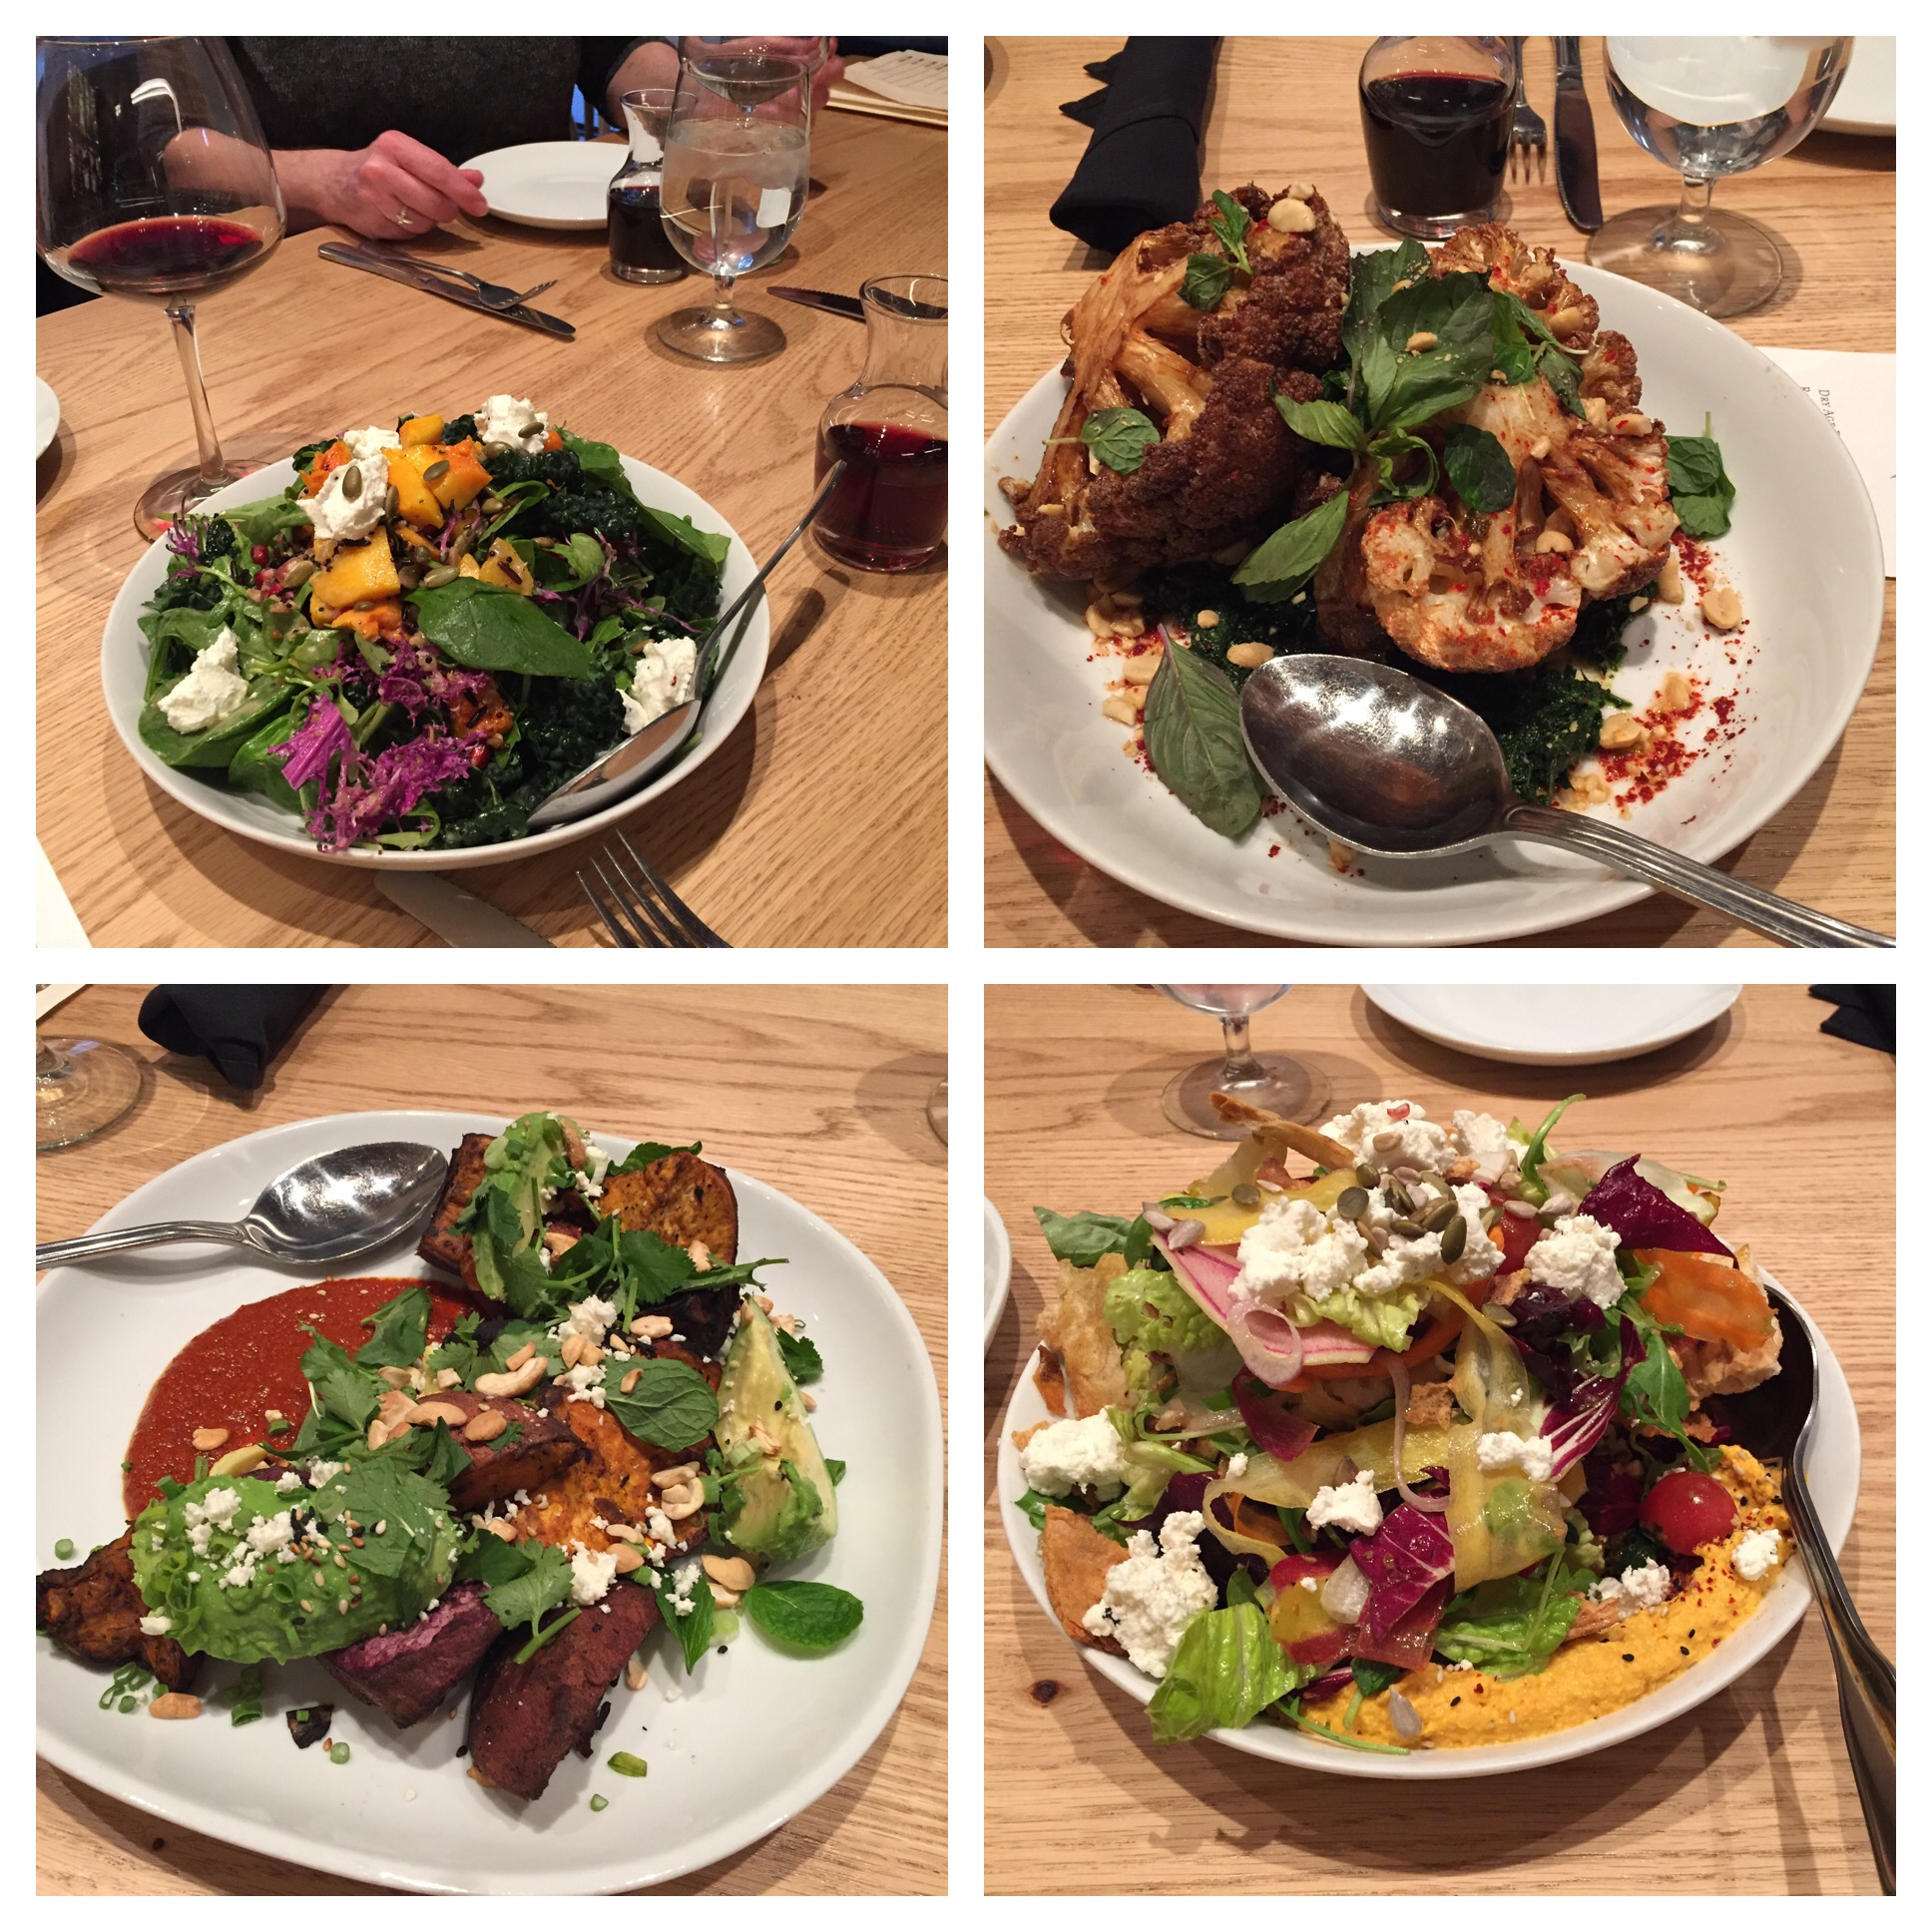 Top left and clockwise: Roasted Butternut Squash, Fall Greens, Wild Rice, Pomegranate, Pumpkin Seeds and Goat Cheese. Cauliflower with Kale Pesto. Carrot Fattoush, Greens, Carrot Hummus, Crispy Pita and Feta. Grilled Sweet Potato, Avacado, Cashews and Feta. All amazing!